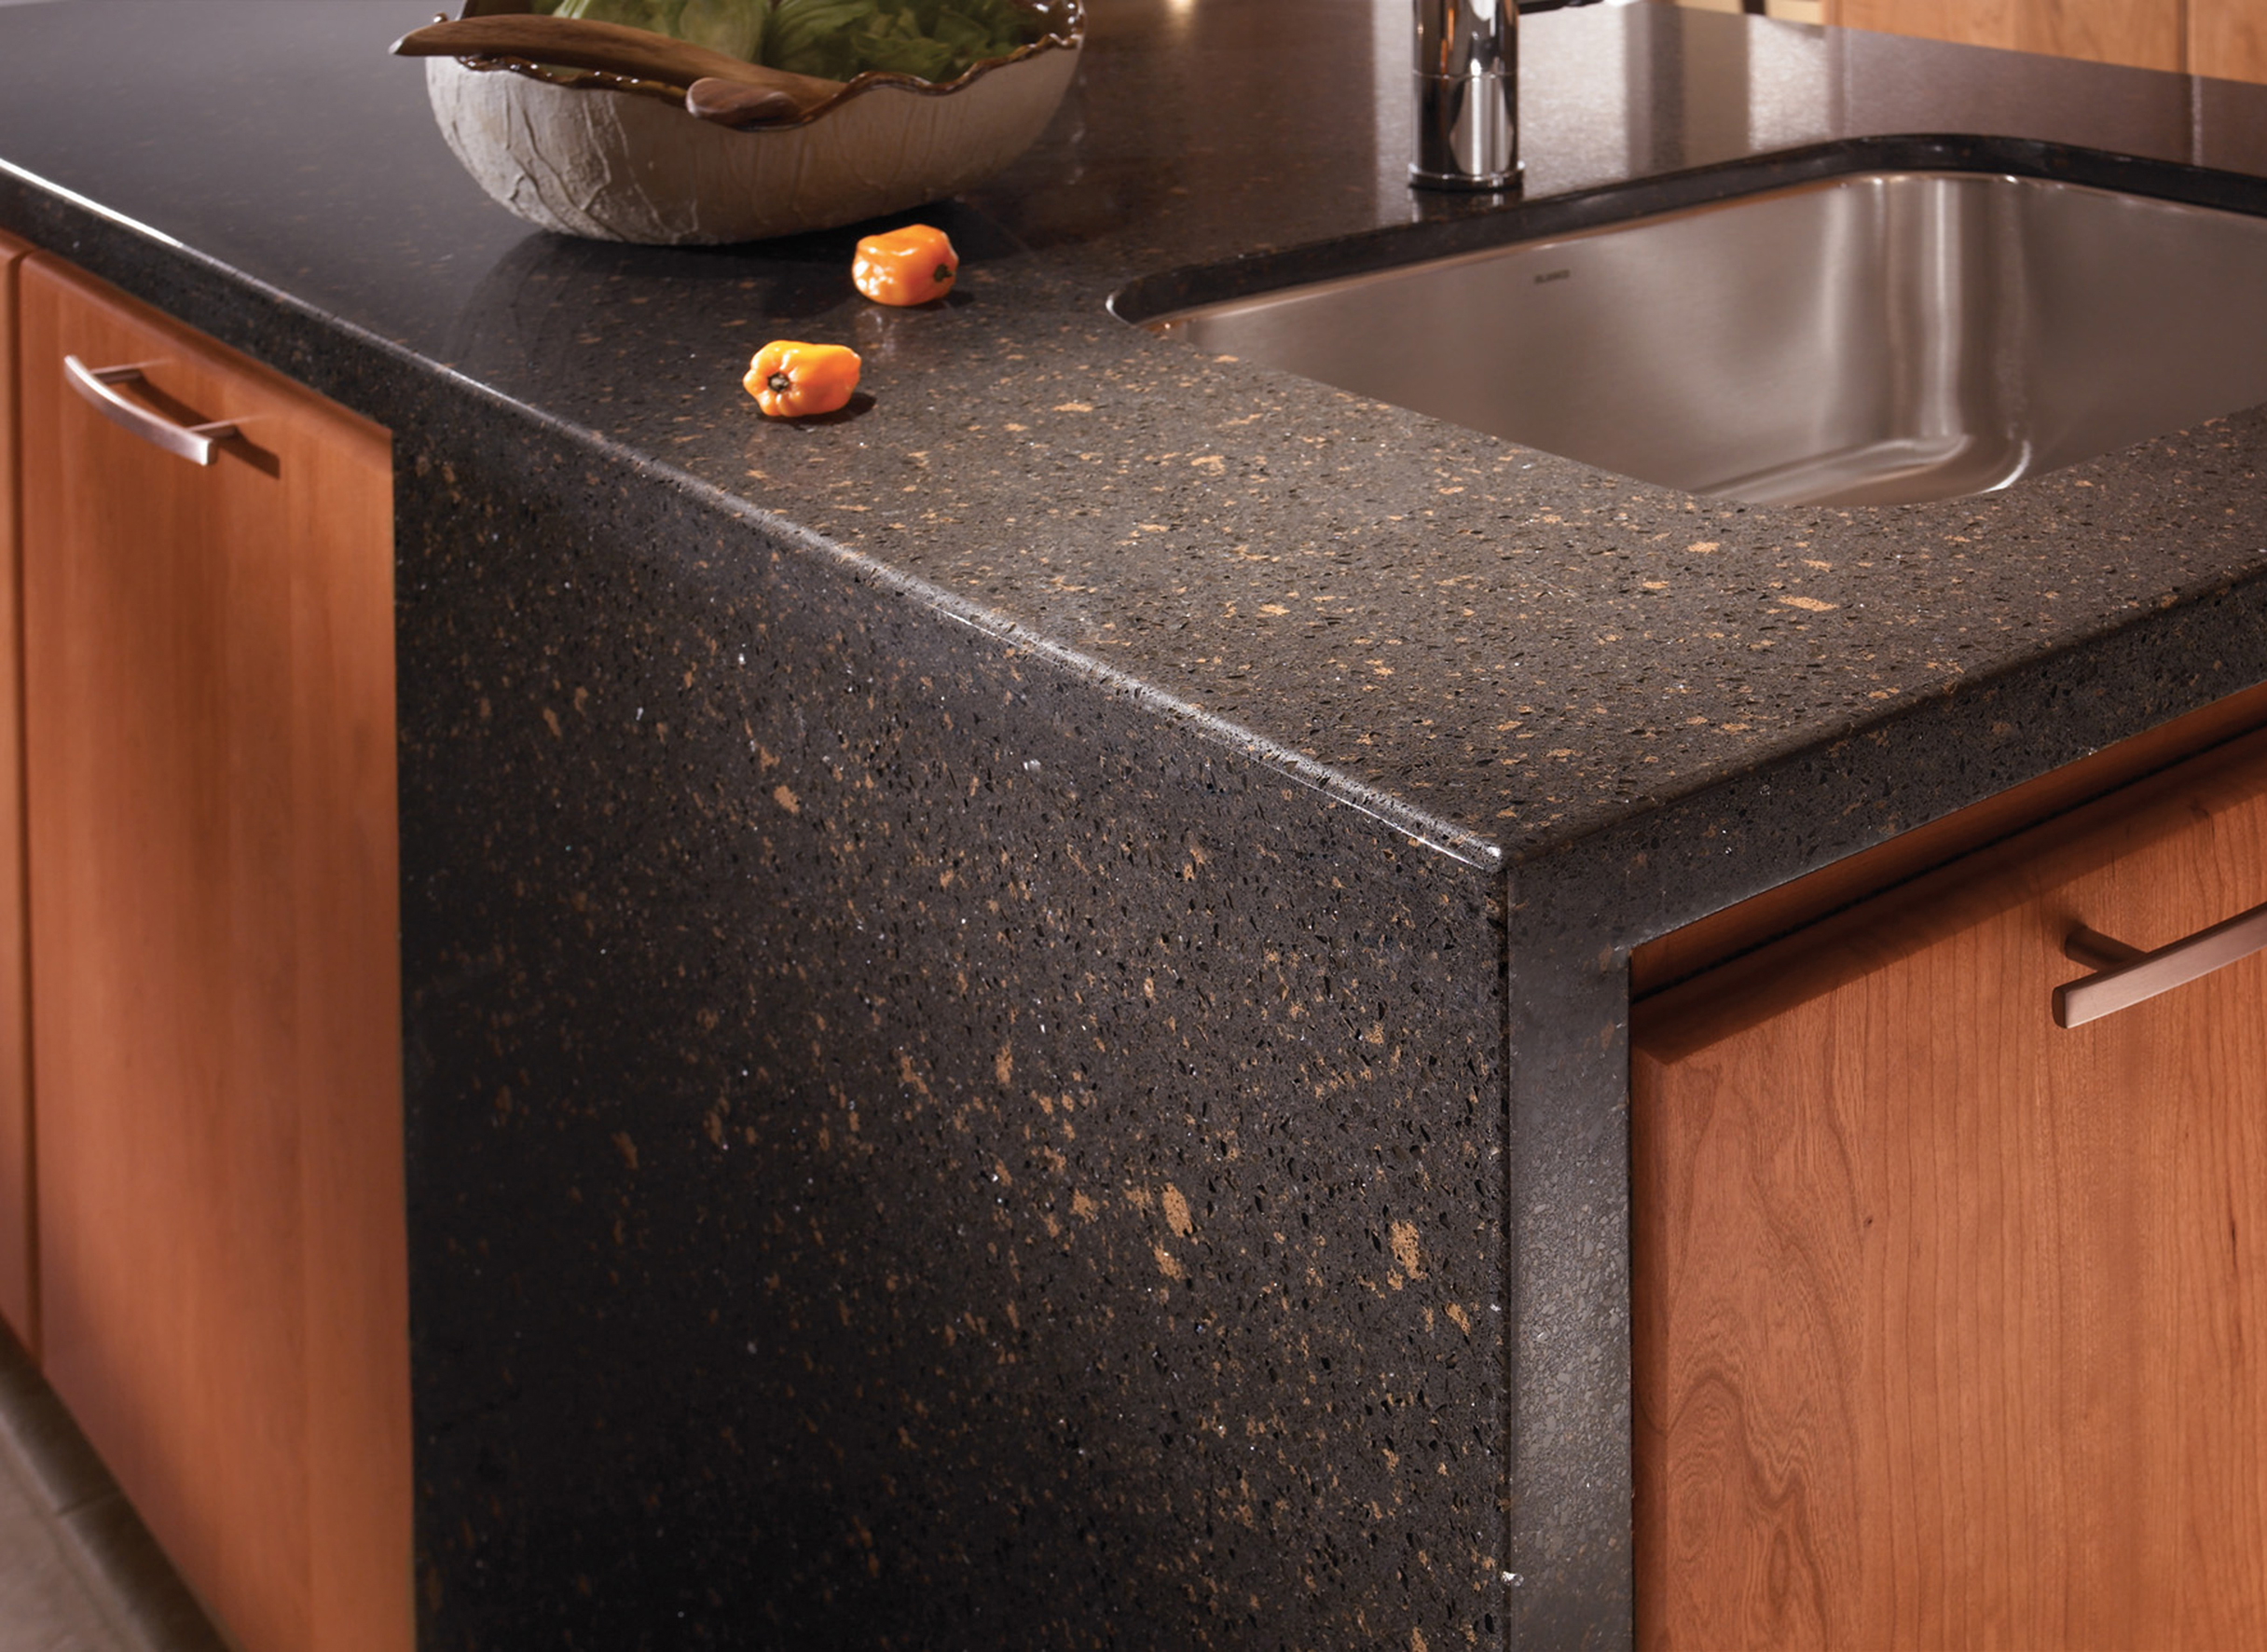 Cosentino Granite Countertops : Cosentino uk eco by the revolutionary